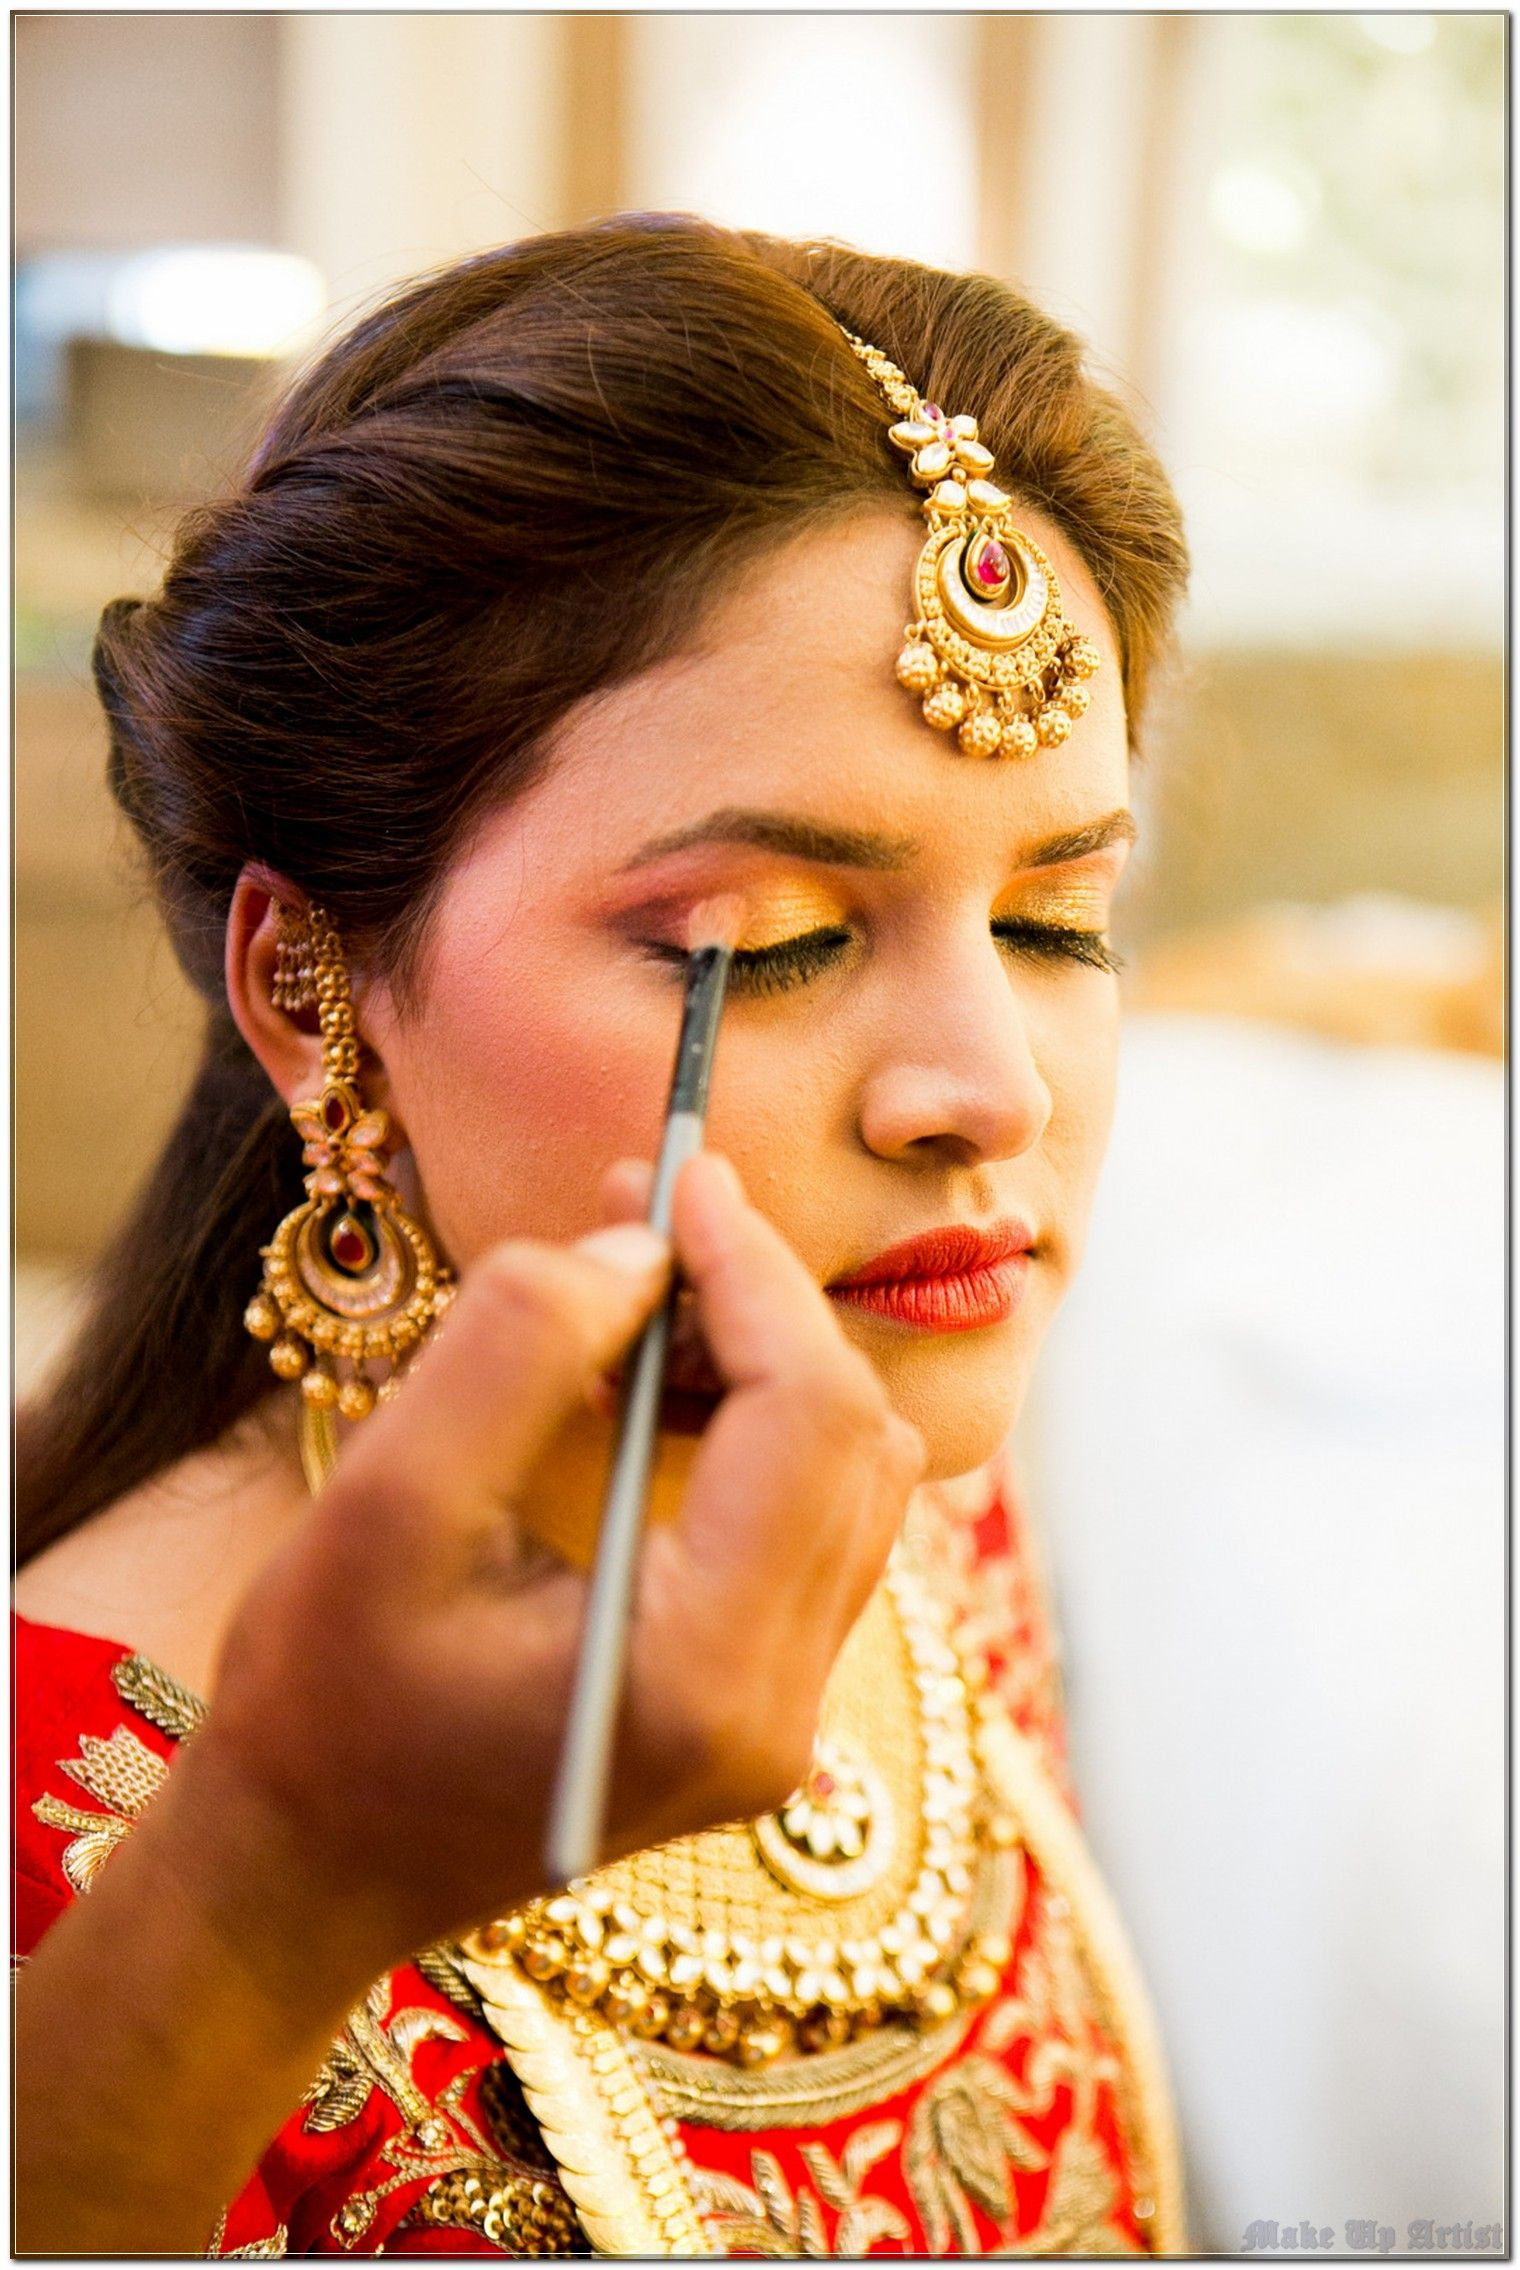 How To Save Money with Make Up Artist?